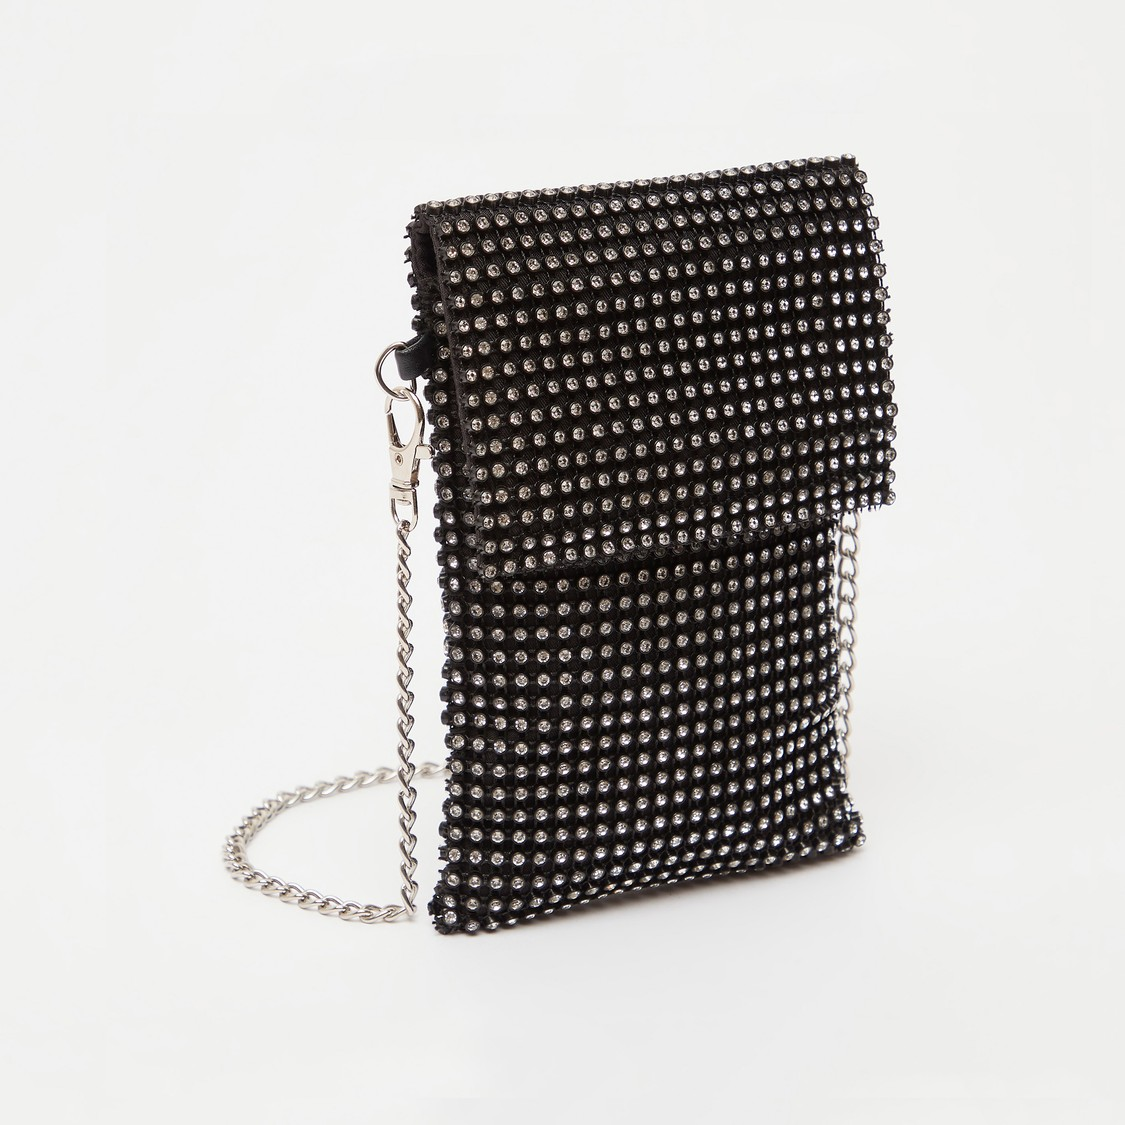 Stone Embellished Crossbody Bag with Chain Strap